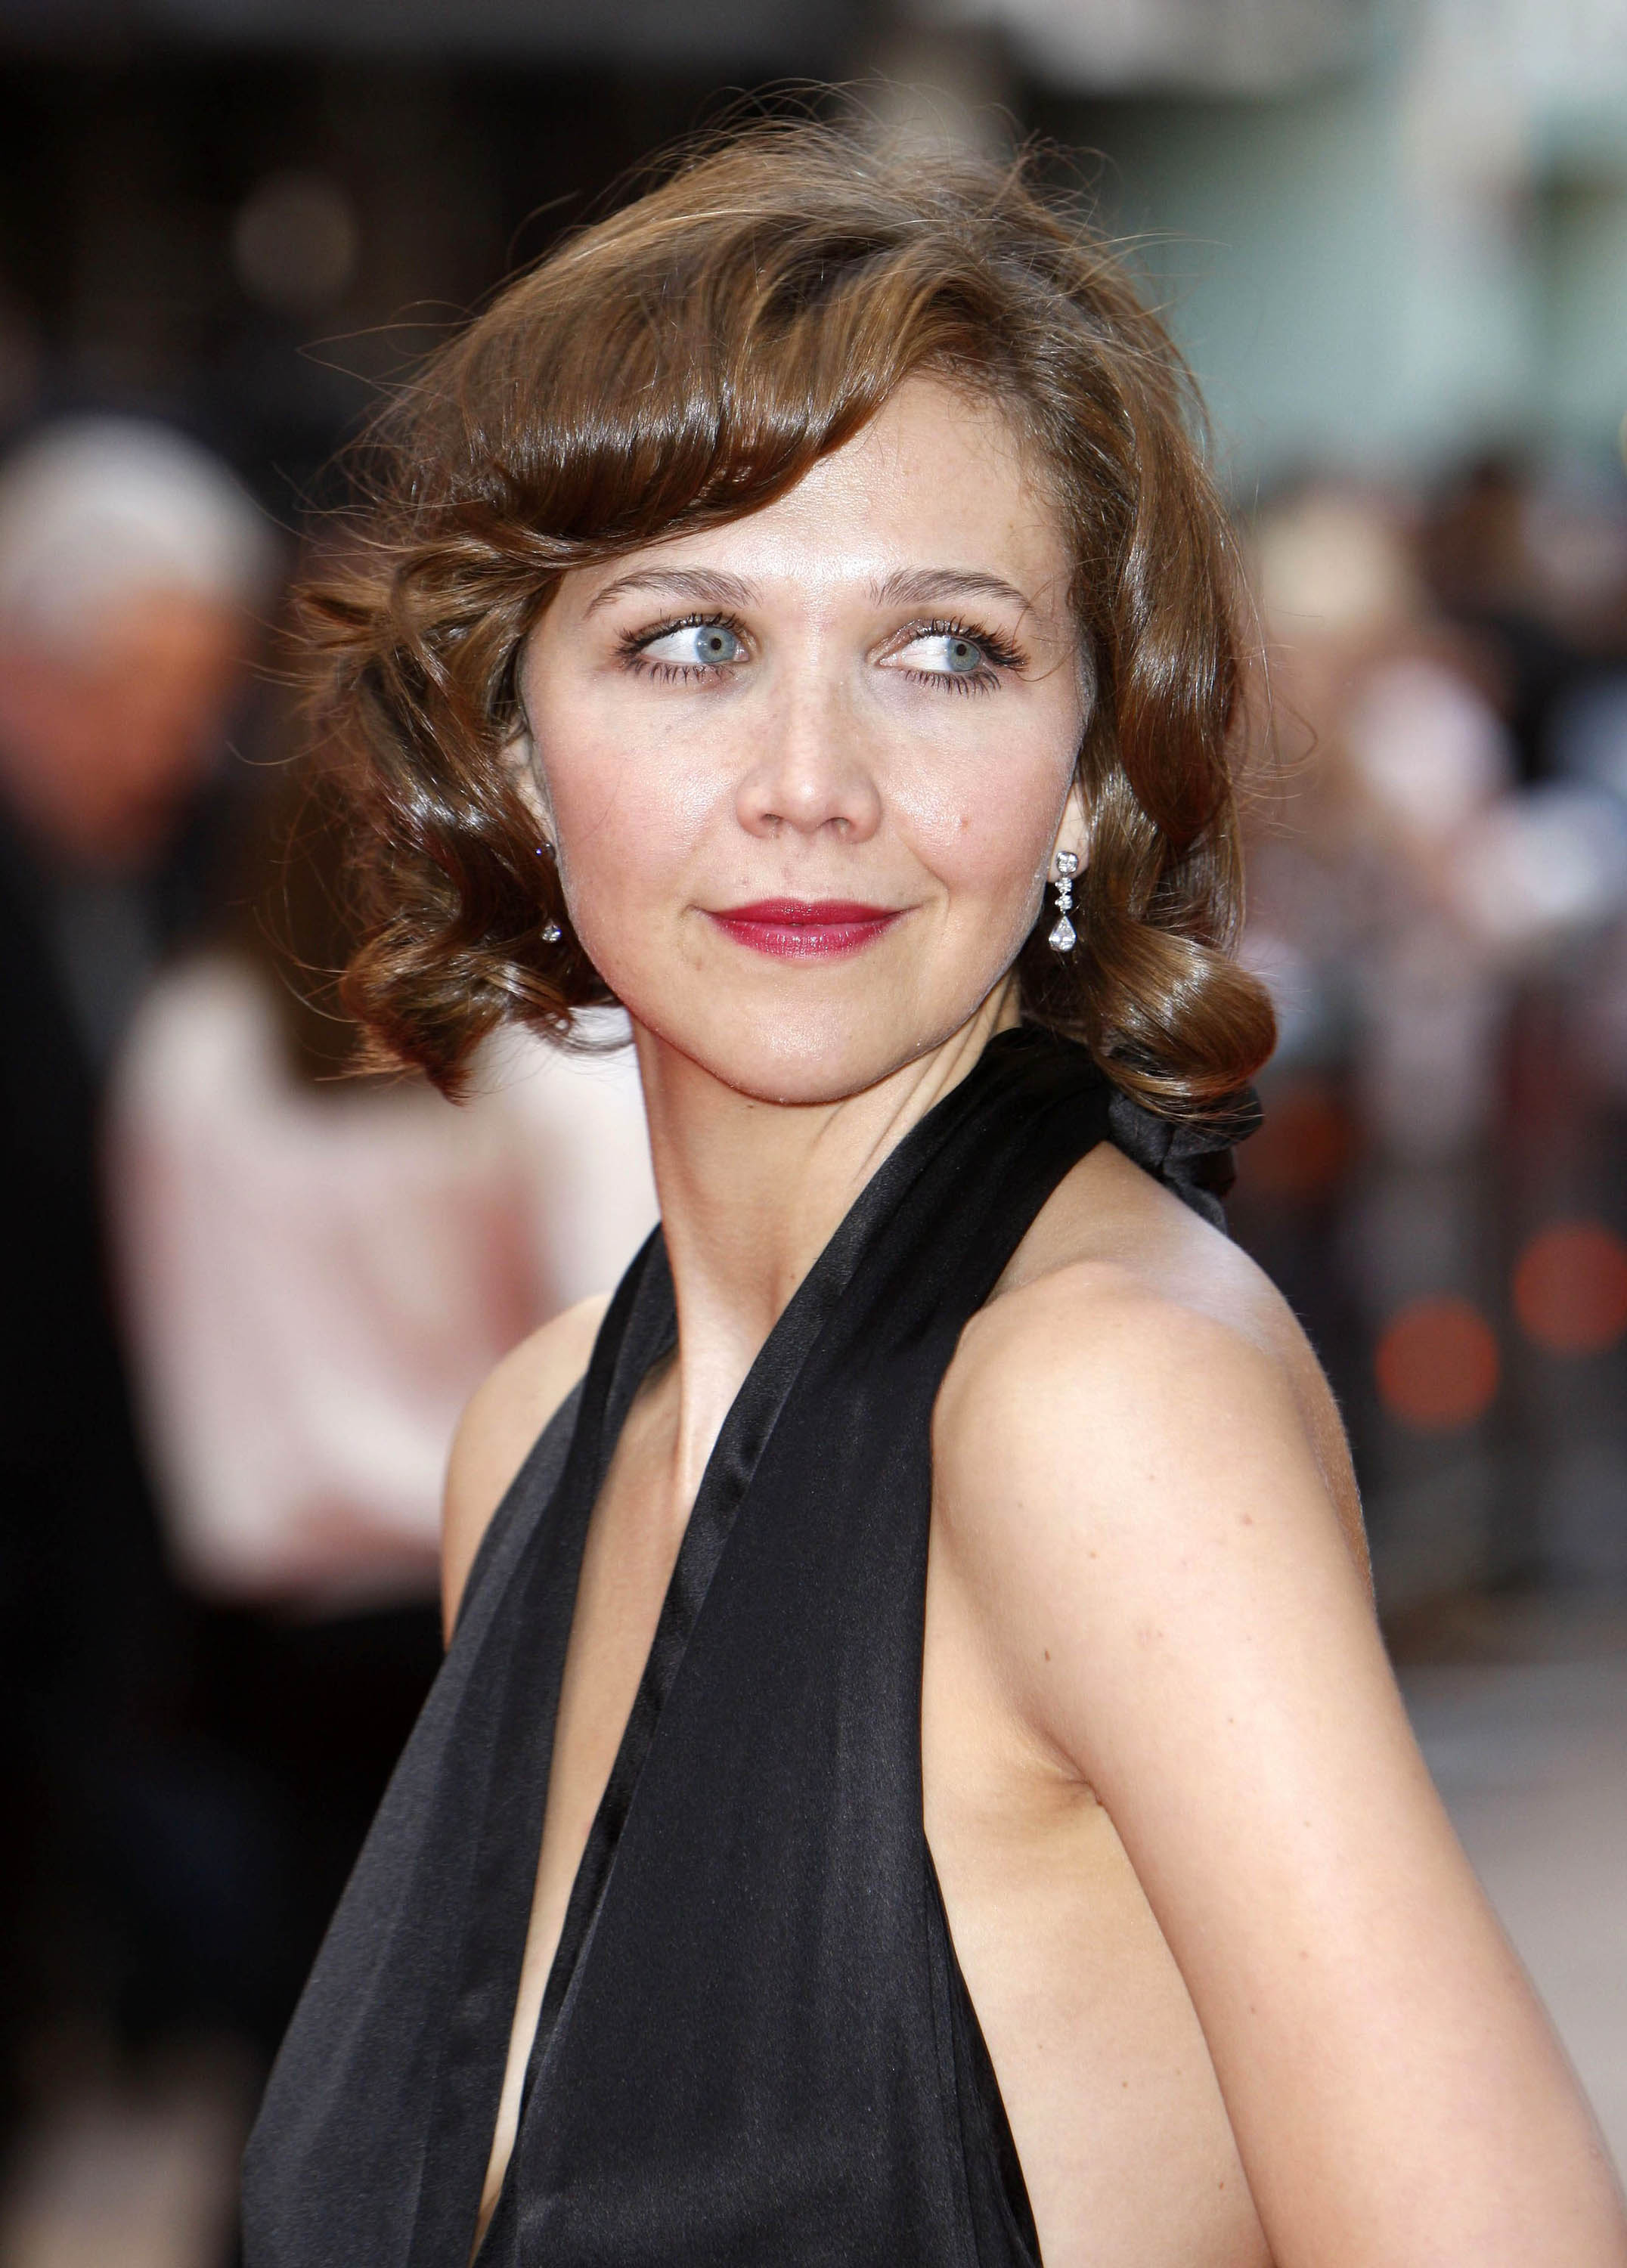 Maggie Gyllenhaal photo 92 of 246 pics, wallpaper - photo #242950 ... Maggie Gyllenhaal